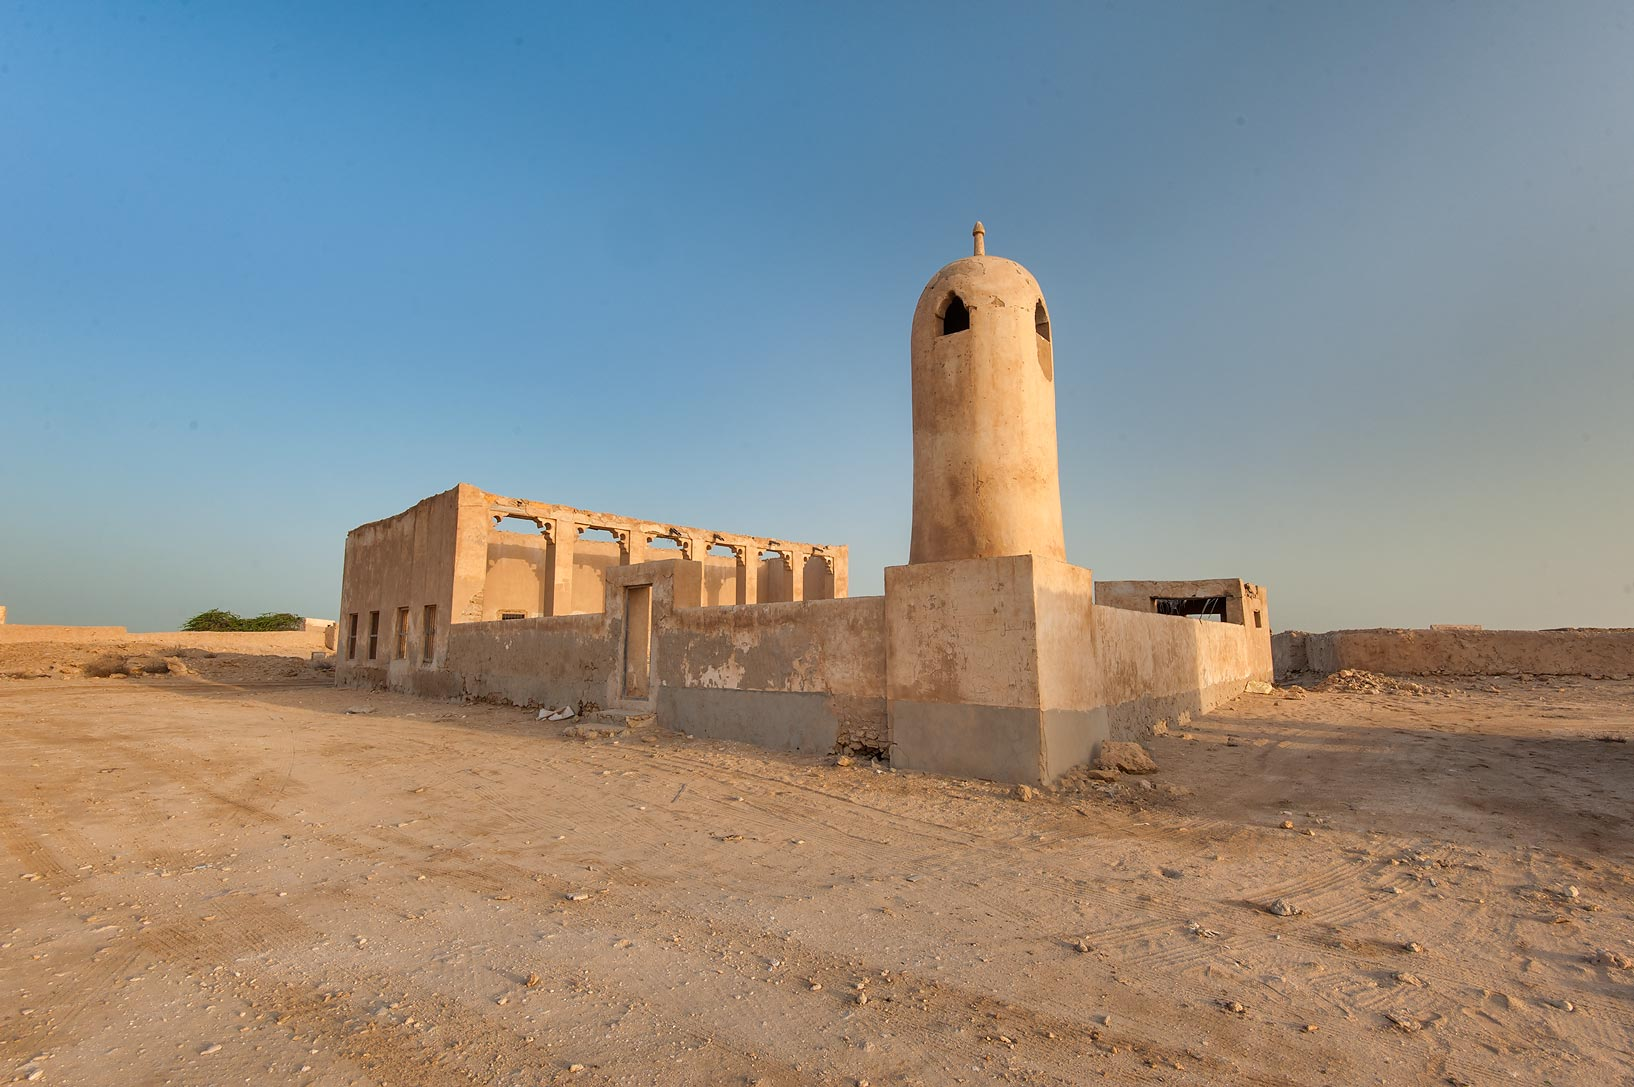 Mosque minaret and traditional colonnade (liwan...Jumayl) west of Ruwais. Northern Qatar